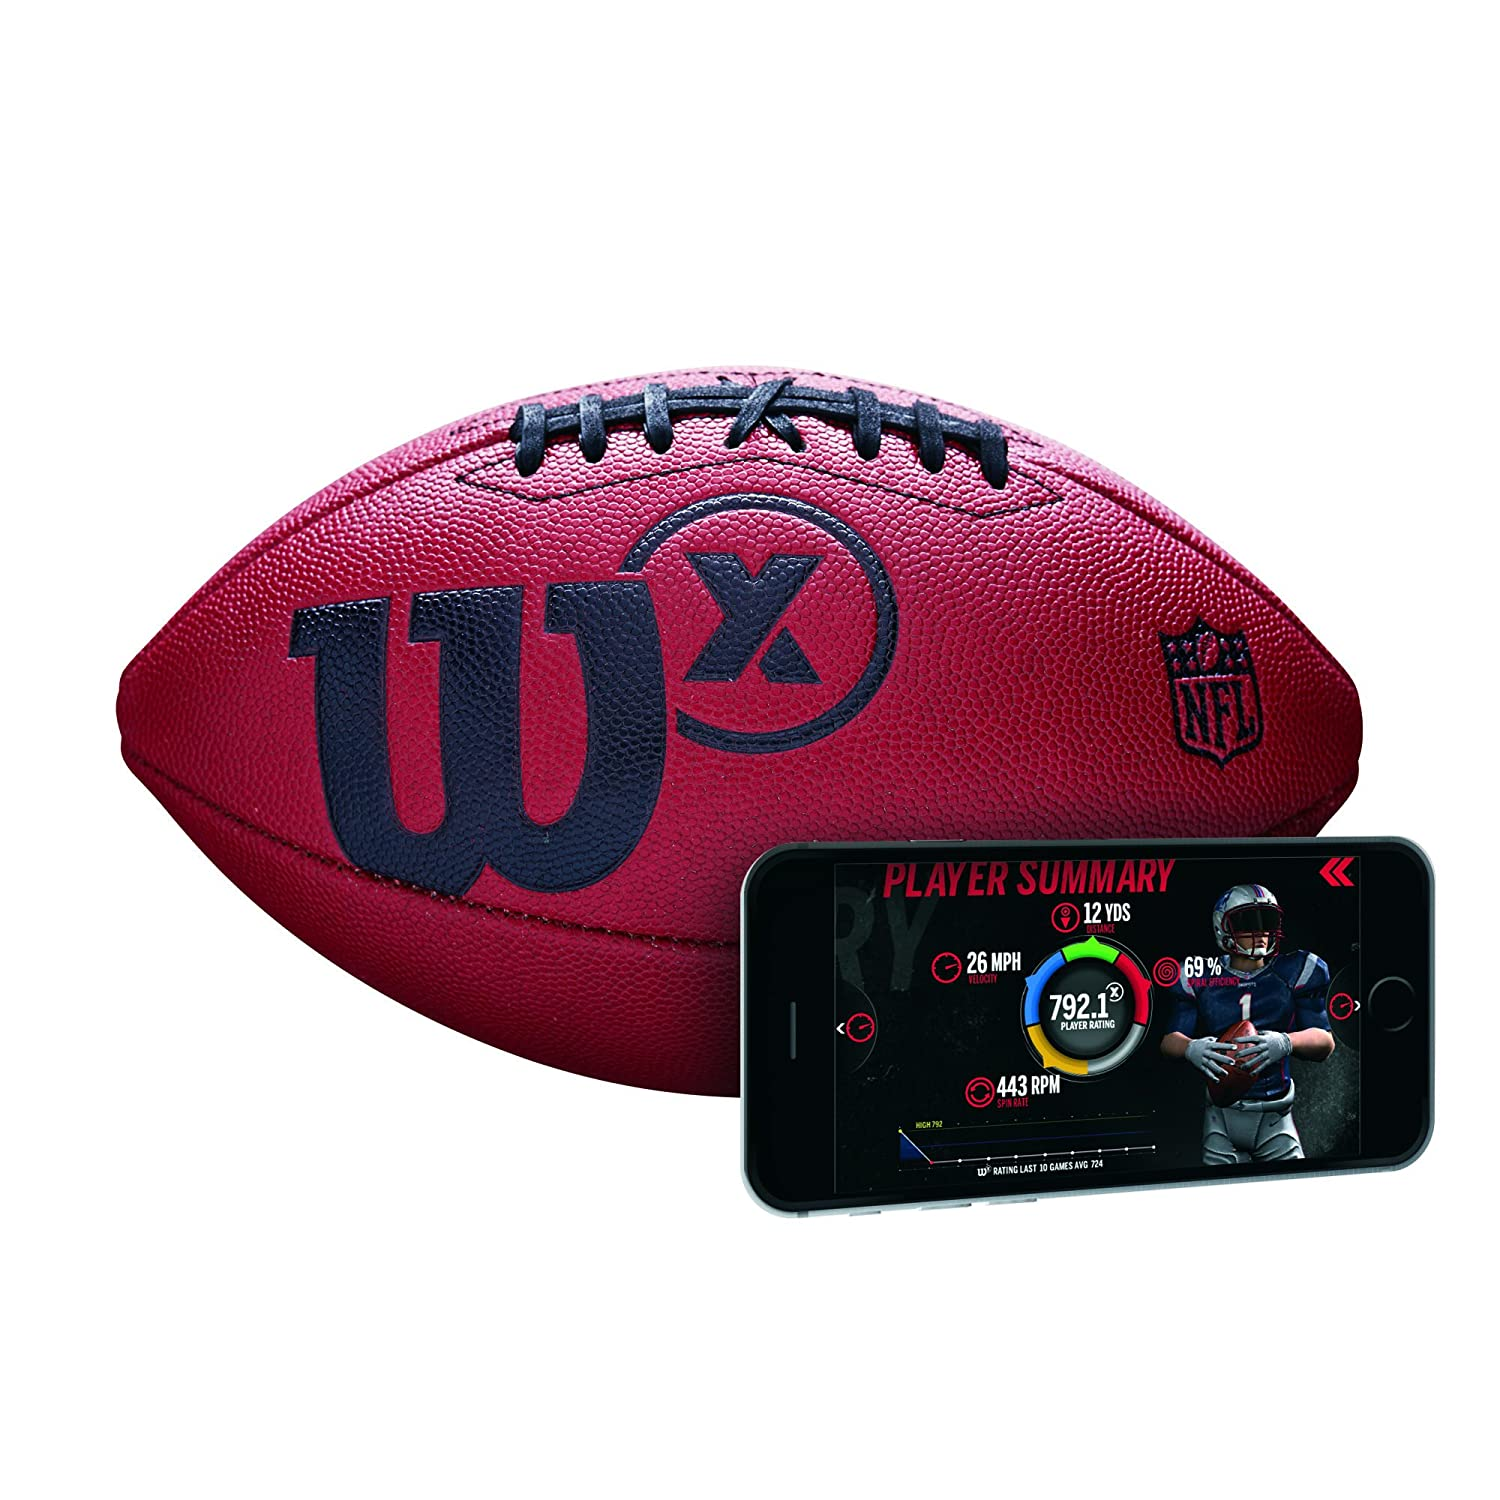 Wilson American Football with Sensor for Tracking Throws and Stats from App, X Connected, Brown